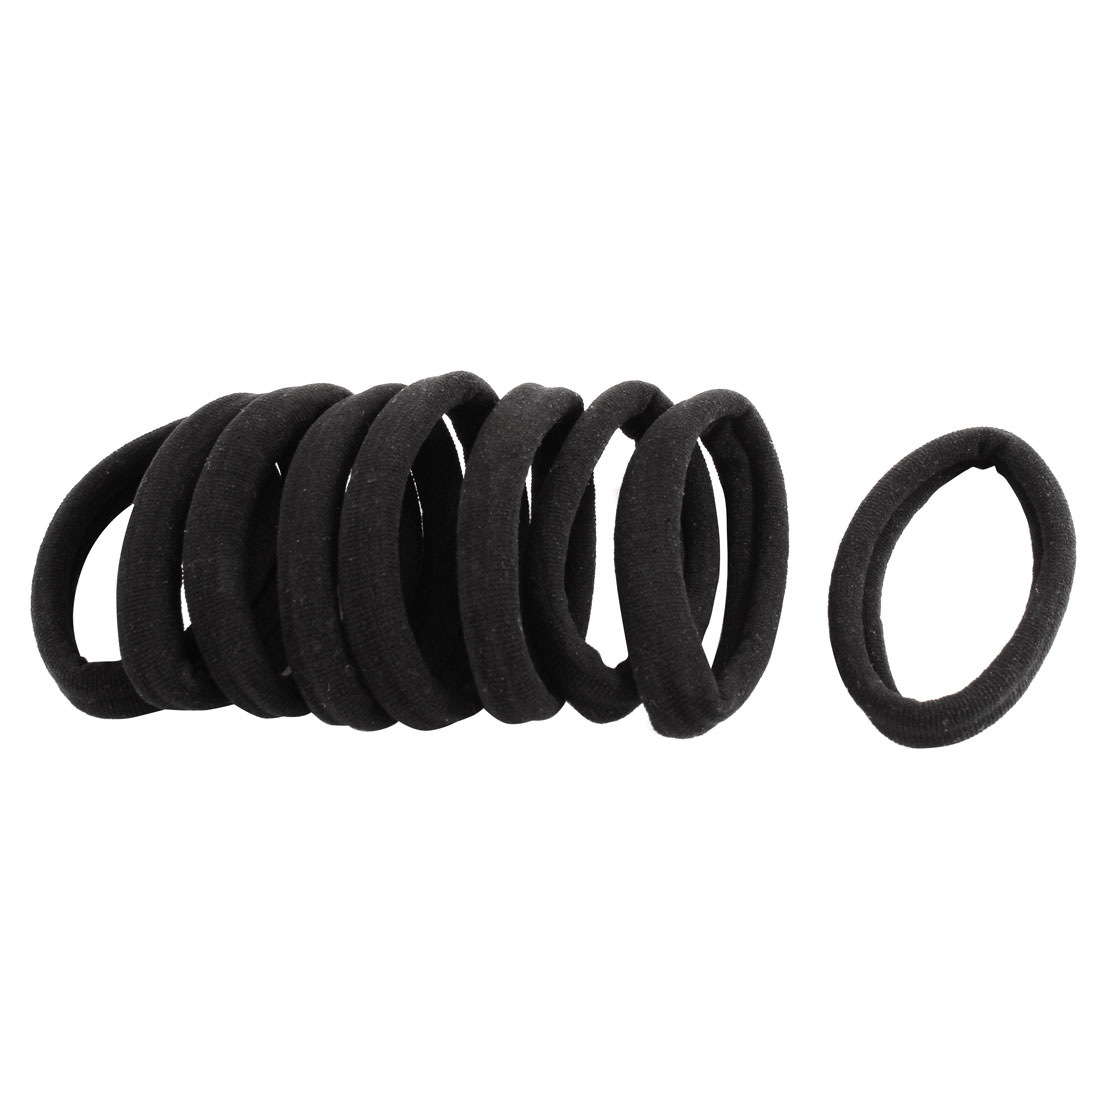 Rubber Hair Bands Elastic Ponytail Holders Black 10 Pcs for Ladies Women